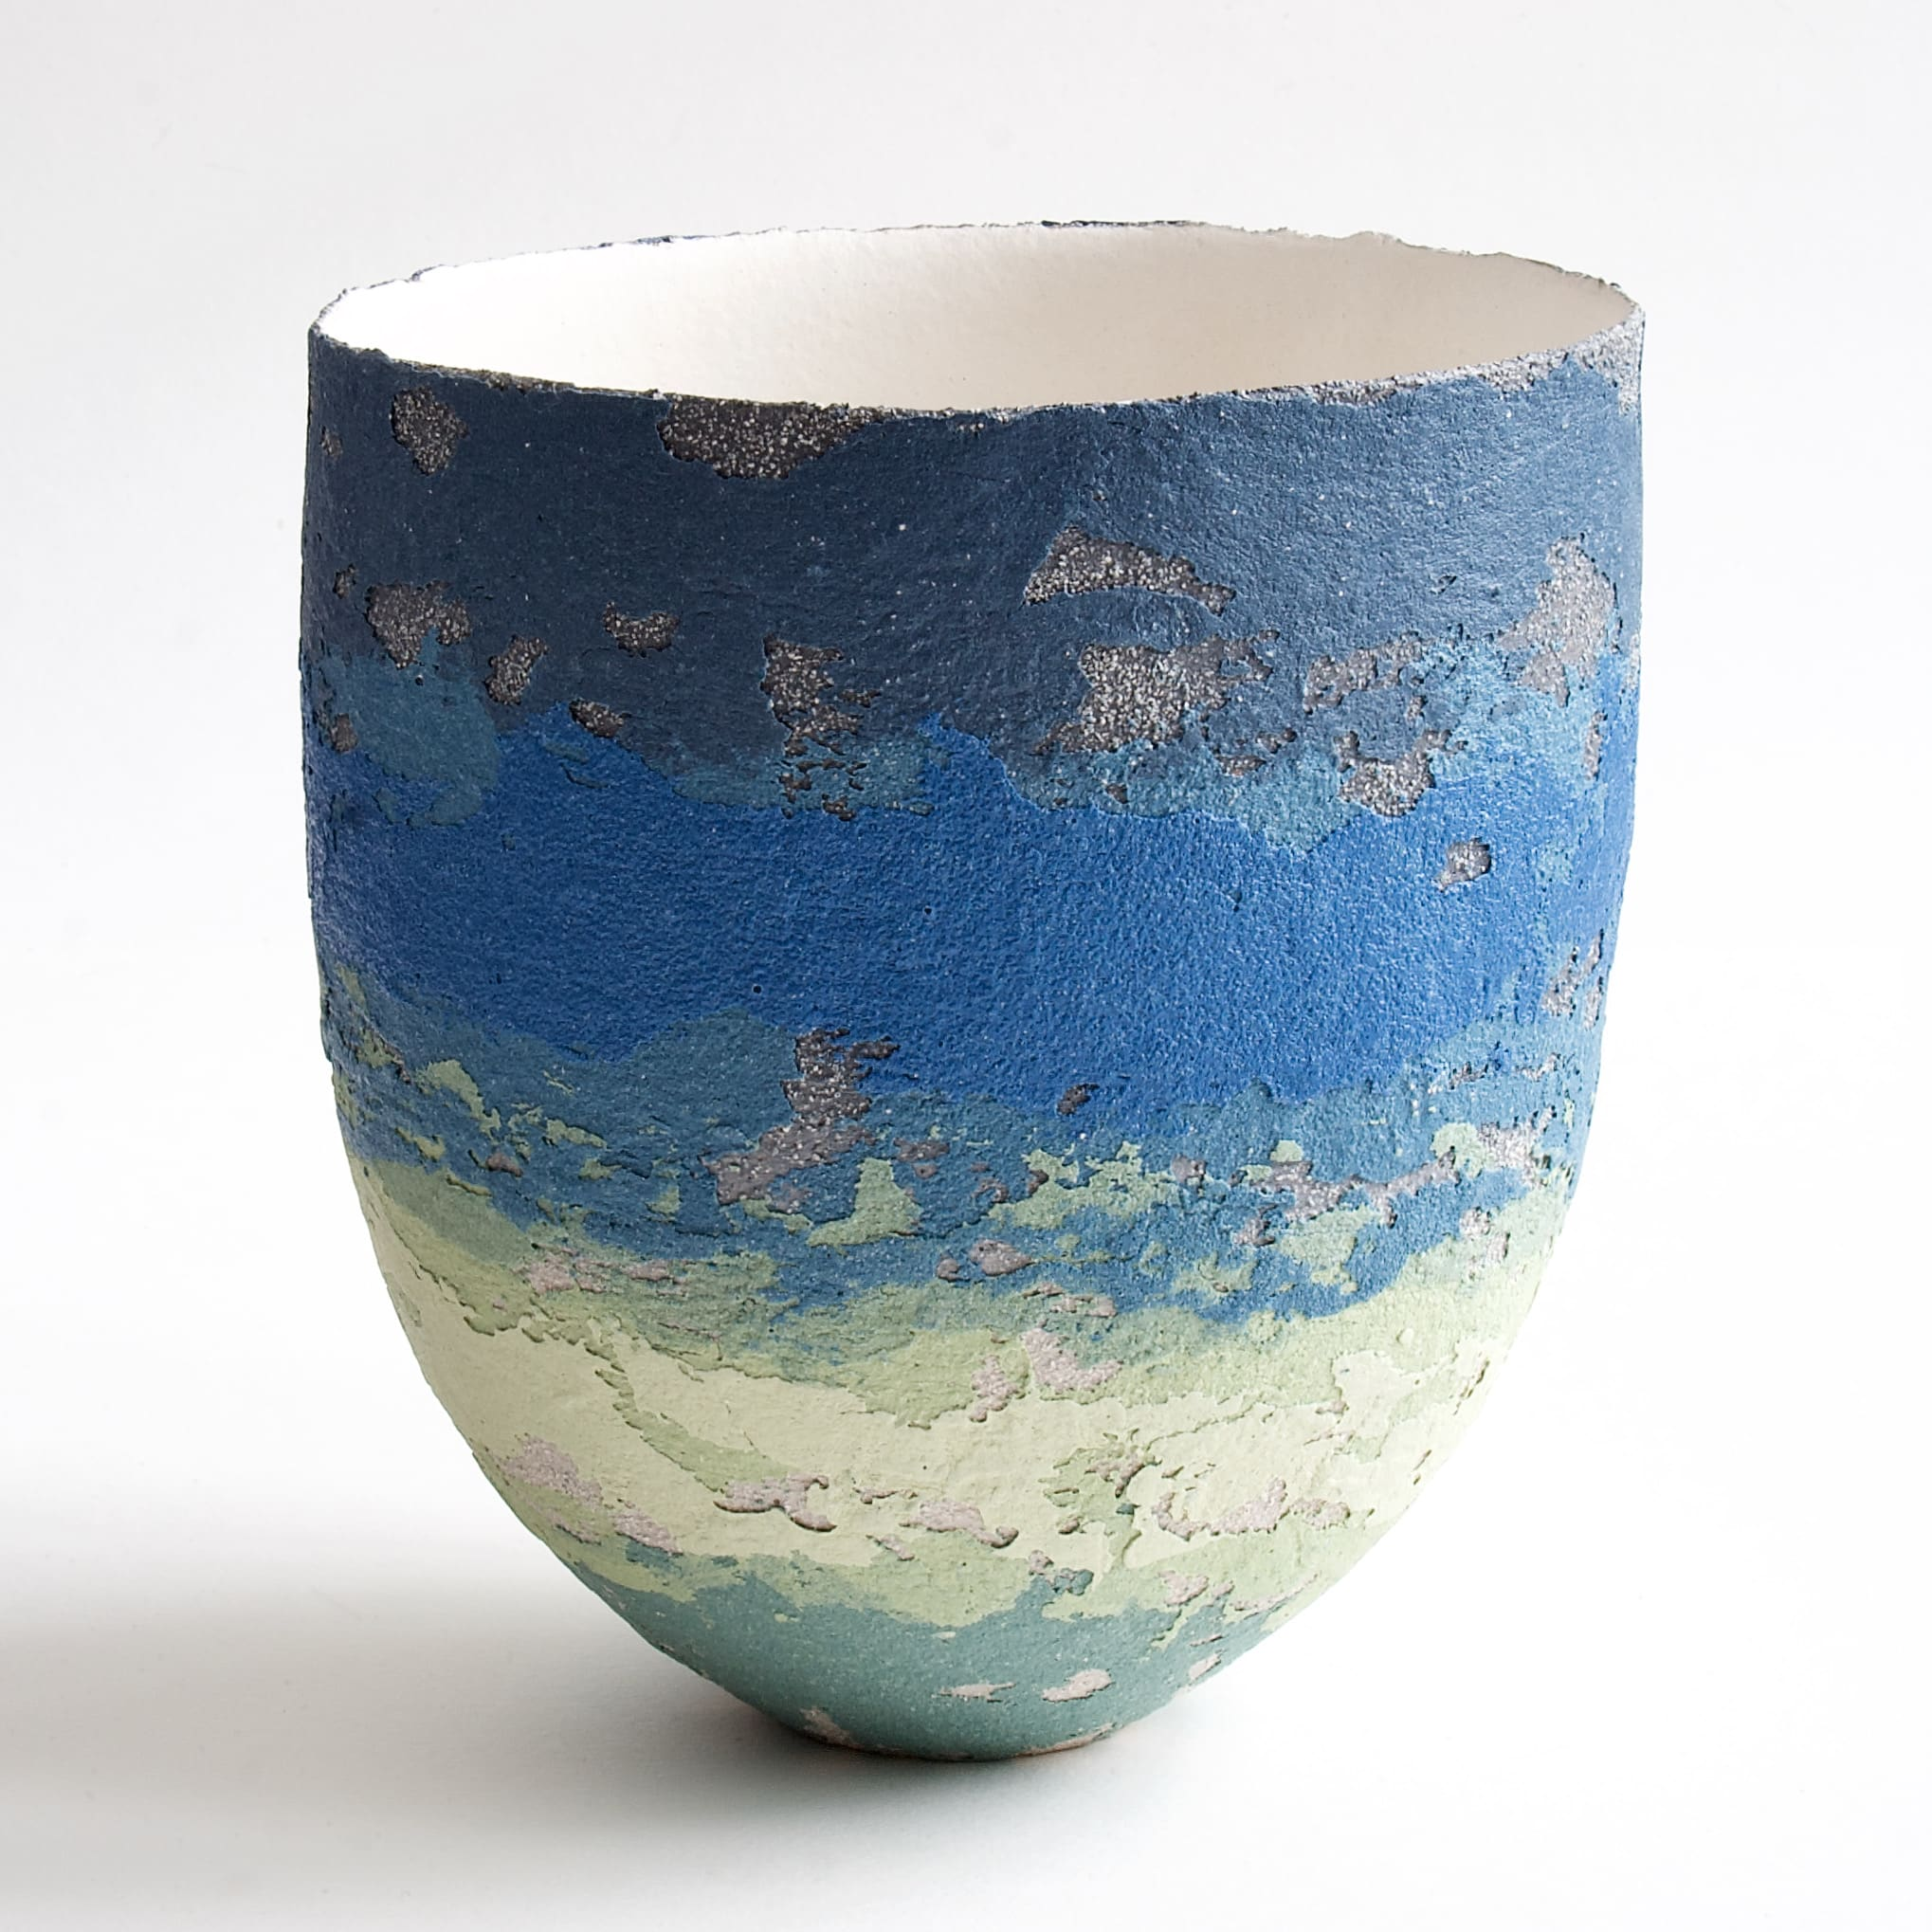 """<span class=""""link fancybox-details-link""""><a href=""""/artists/79-clare-conrad/works/8124-clare-conrad-vessel-white-interior-2021/"""">View Detail Page</a></span><div class=""""artist""""><strong>Clare Conrad</strong></div> b. 1948 <div class=""""title""""><em>Vessel, white interior</em>, 2021</div> <div class=""""medium"""">wheel-thrown stoneware </div> <div class=""""dimensions"""">h. 15.5 cm </div><div class=""""price"""">£275.00</div><div class=""""copyright_line"""">Own Art: £27.50 x 10 Months, 0% APR</div>"""